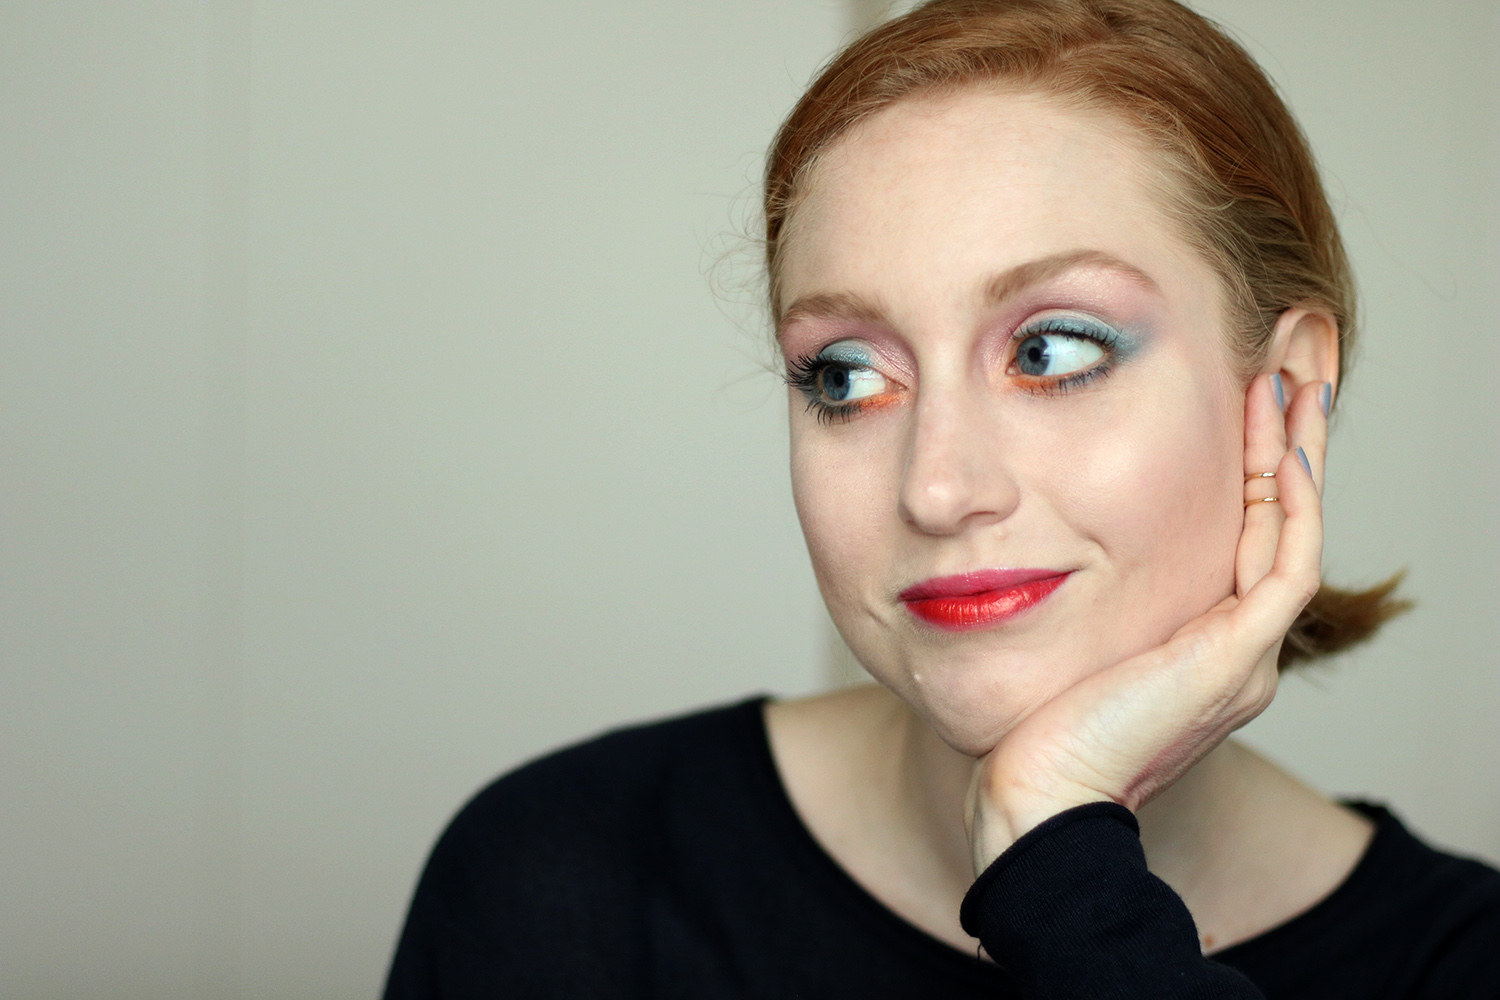 Buntes Makeup, Mutiges Makeup, Fasching, Frühling, Helle Haut, Makeup Tutorial, Monday's Makeup, Beautytipps, Beautyblog, Berlin, Influencer, Advance Your Style, LUSH Lippenstift Kraft